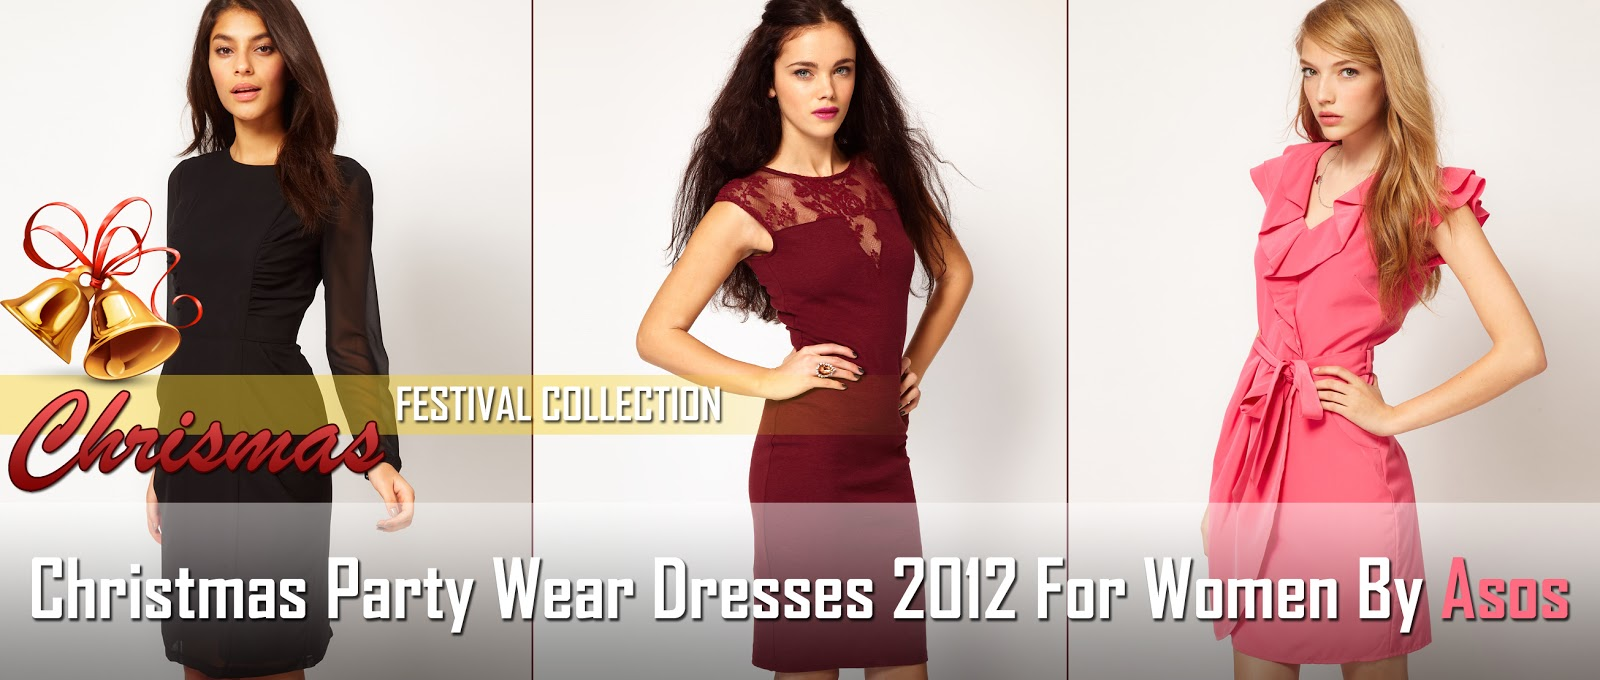 Christmas Party Wear Dresses 2012 | Women Outfits For Christmas ...